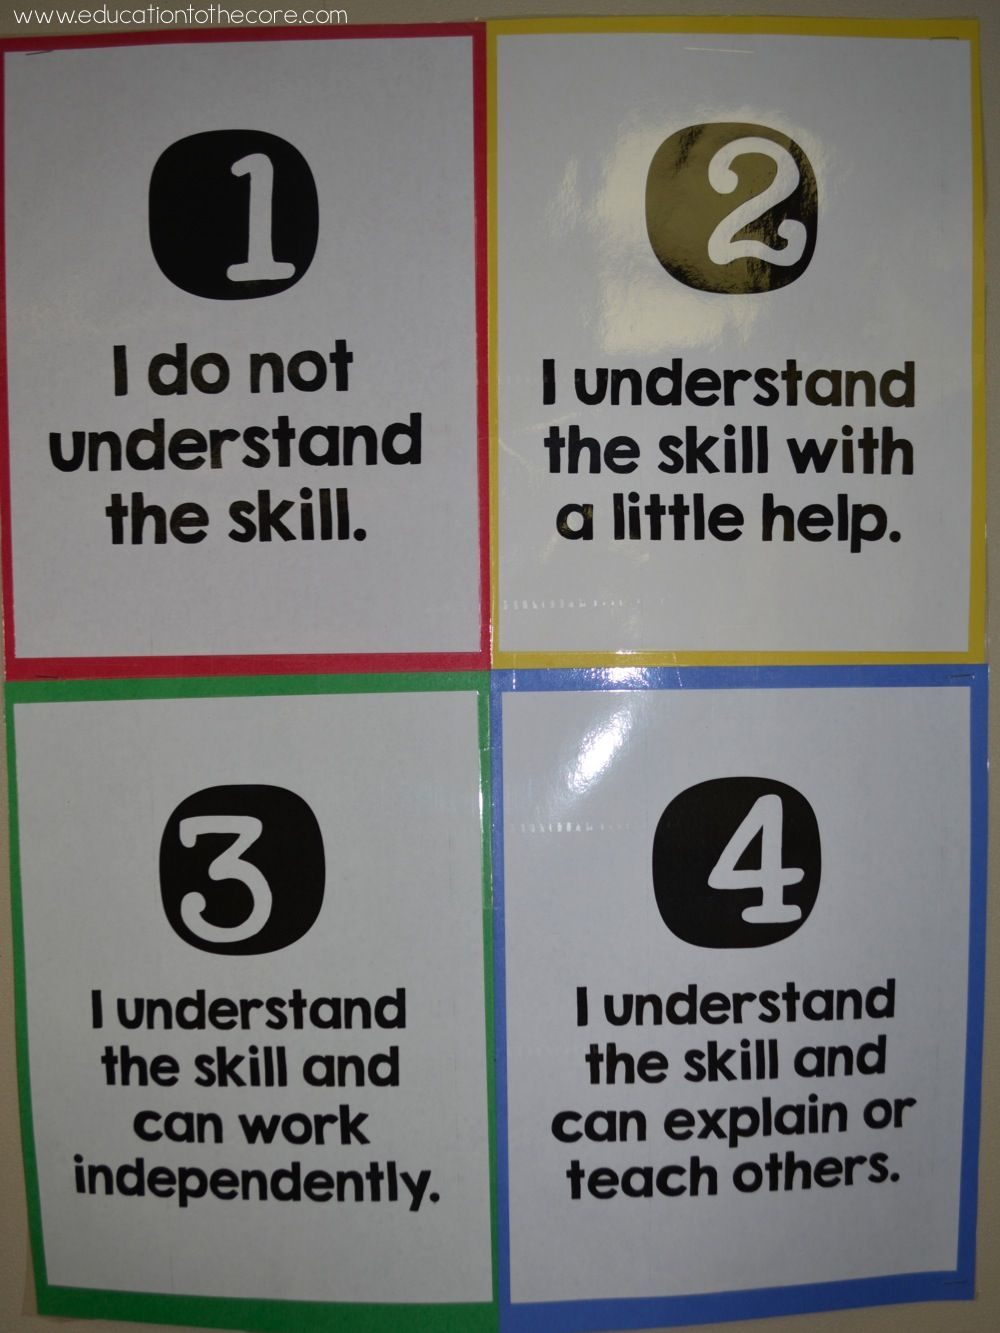 Free Learning Scale Posters is part of Learning scales, Teaching strategies, Teaching, Assessment for learning, Visible learning, Teacher resources - Free Learning Scale Posters